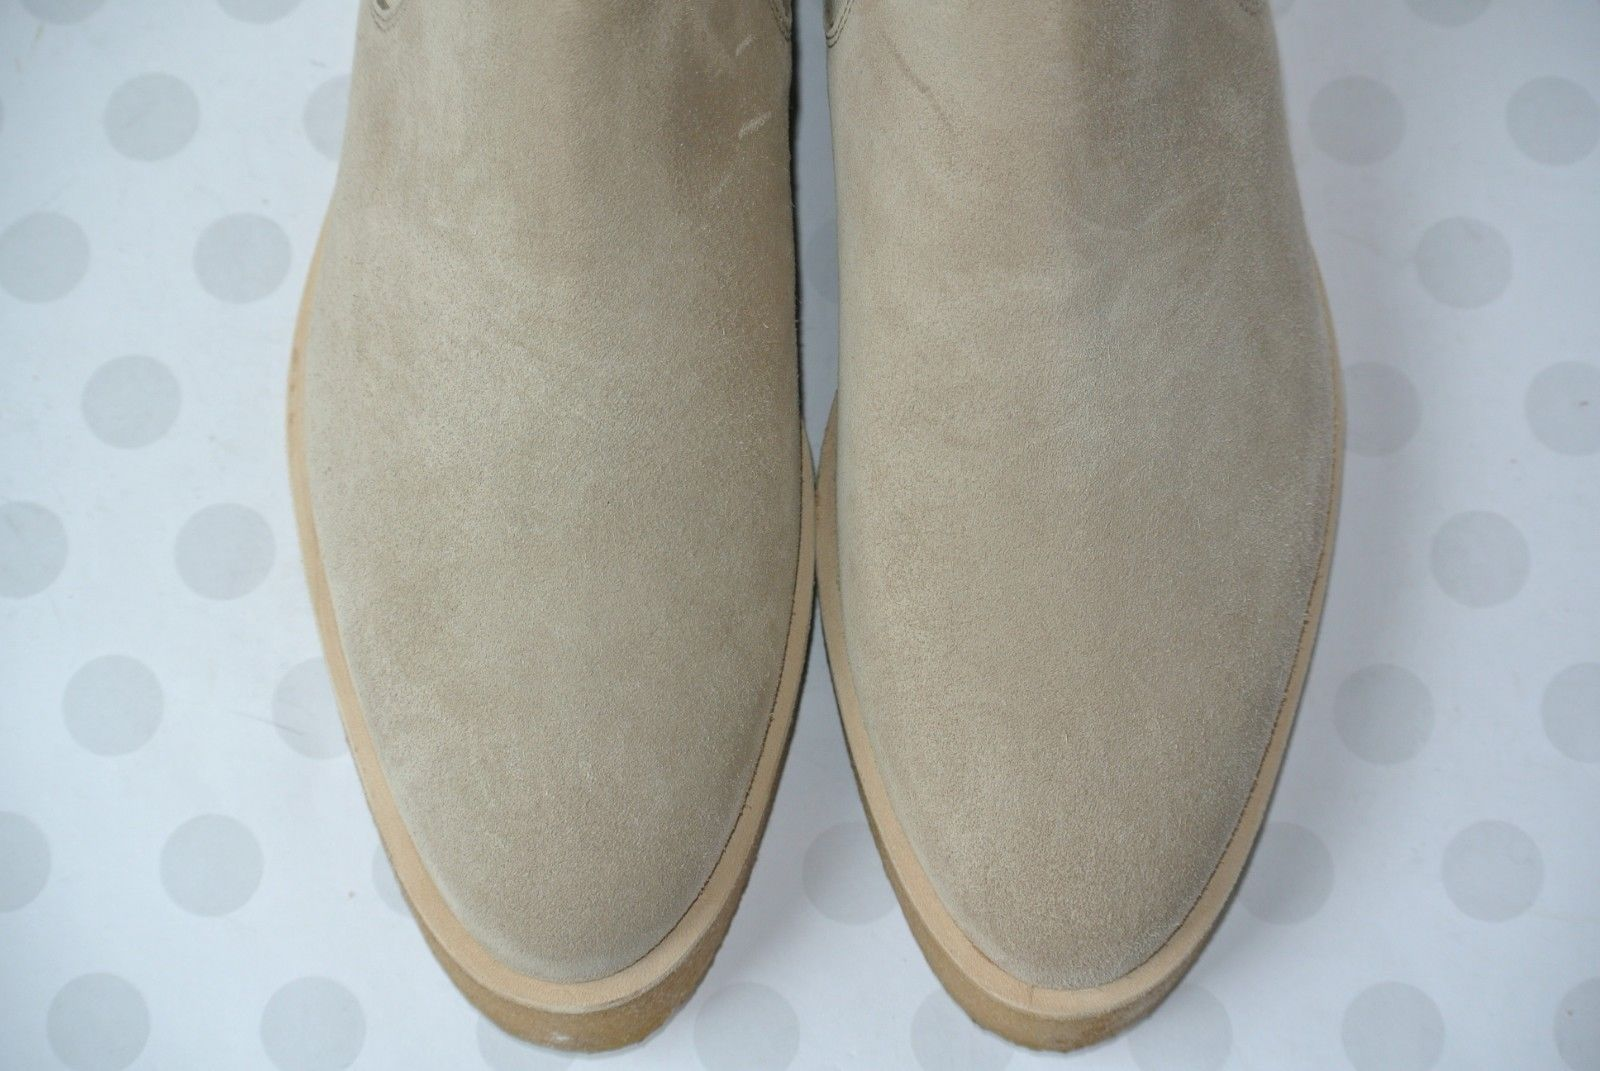 NEW Clarks Italy Ornella Chelsea Womens 8.5 M Sand Suede Wedge Ankle Boots $299